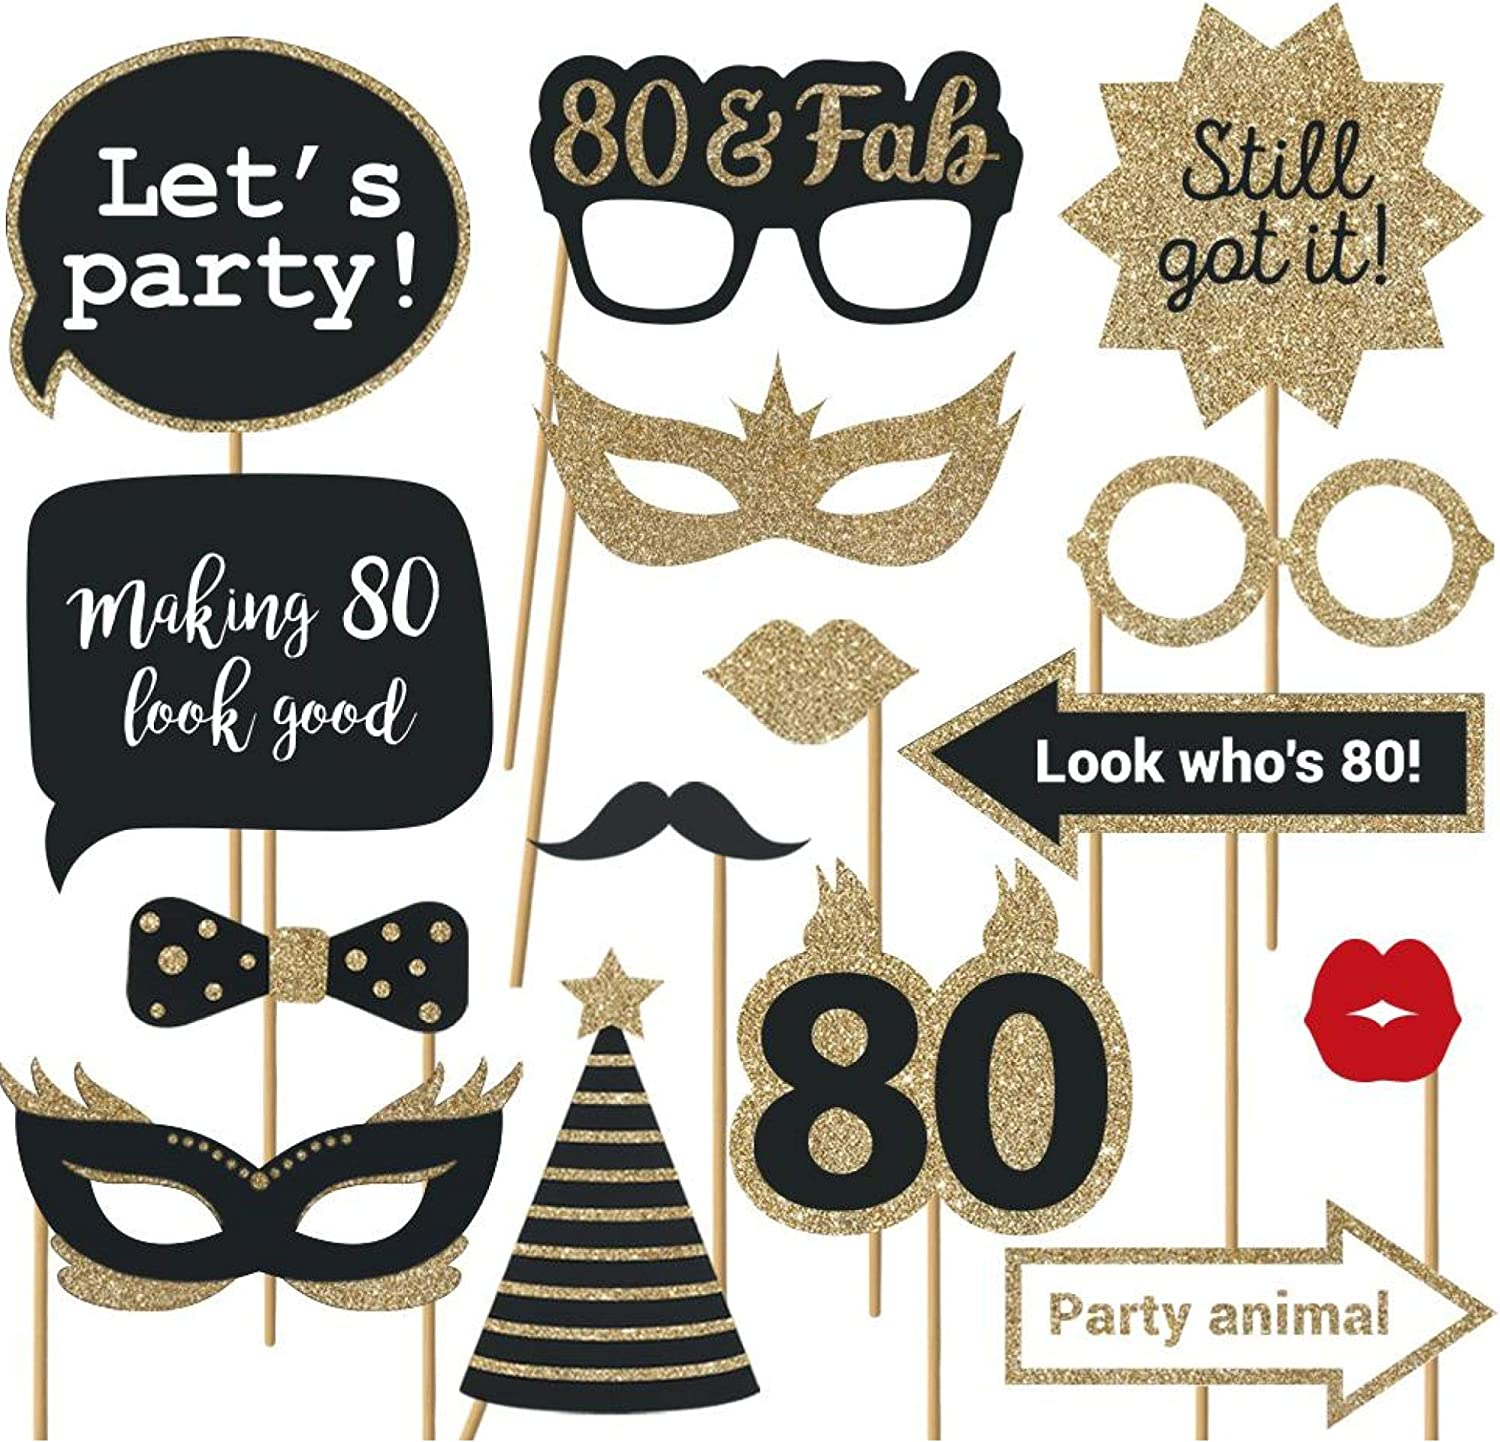 Fully Assembled 80th Birthday Photo Booth Props - Set of 30 - Black & Gold Selfie Signs - 80th Party Supplies & Decorations - Cute 80th Bday Designs with Real Glitter - Did we mention no DIY?